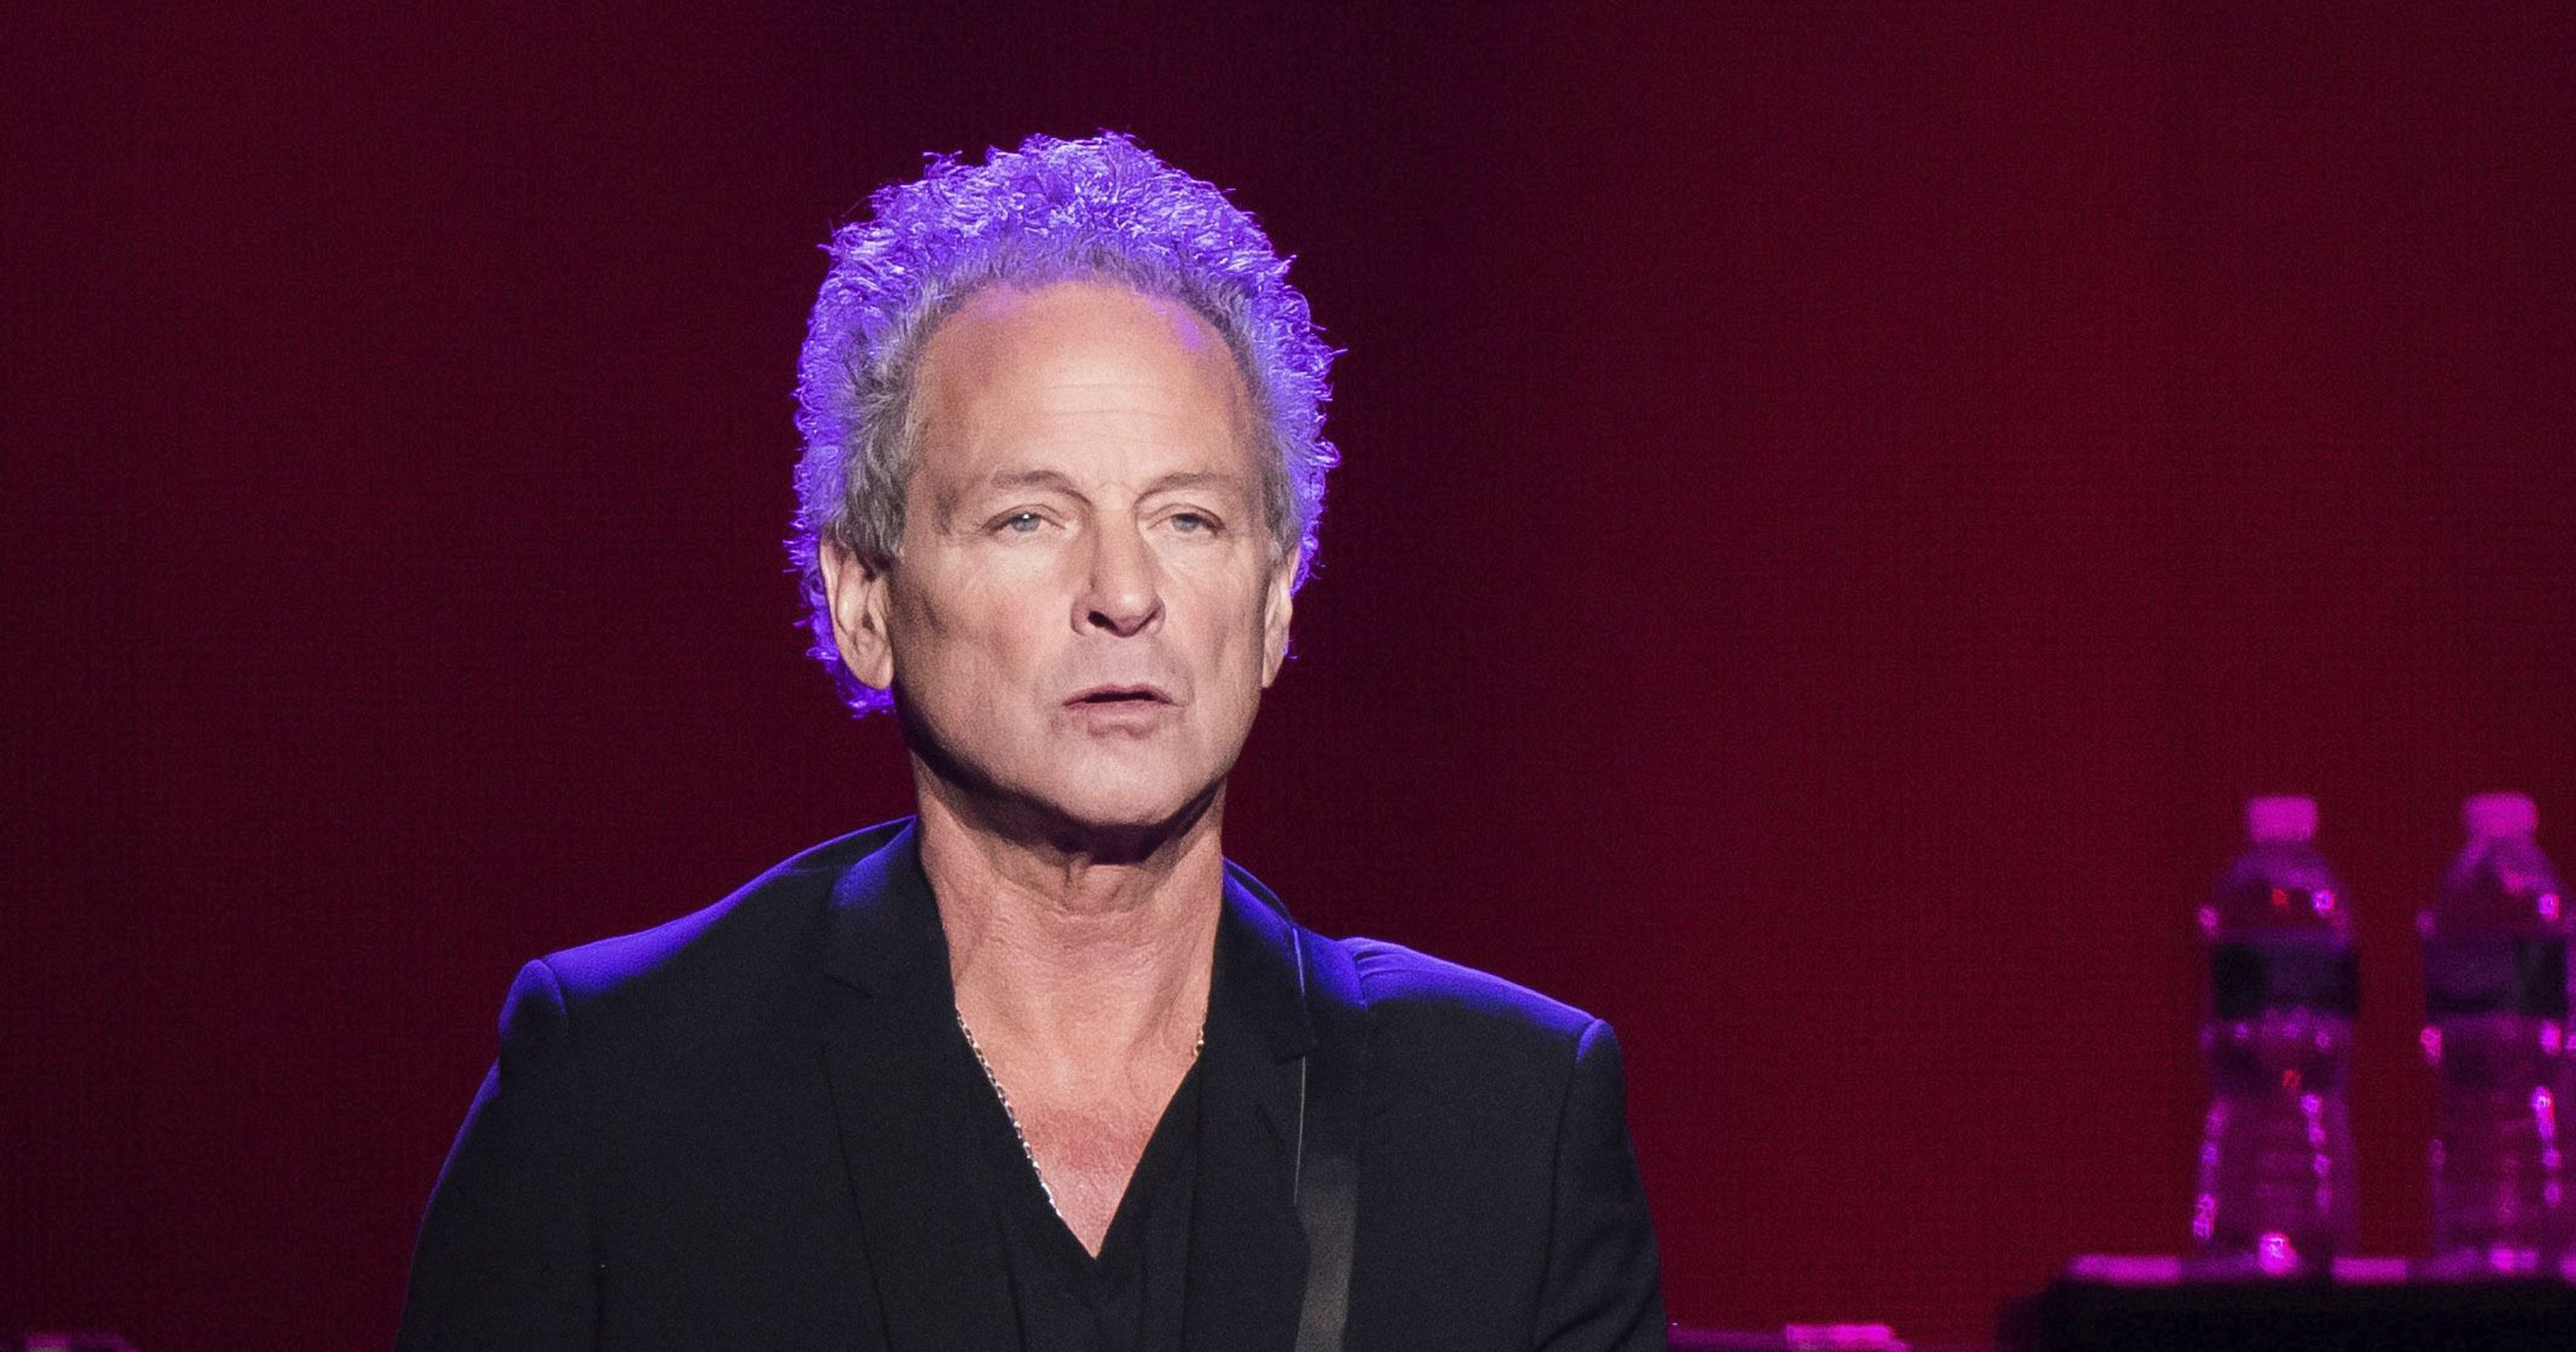 Lindsey Buckingham says Stevie Nicks gave Fleetwood Mac 'an ultimatum,' caused his departure